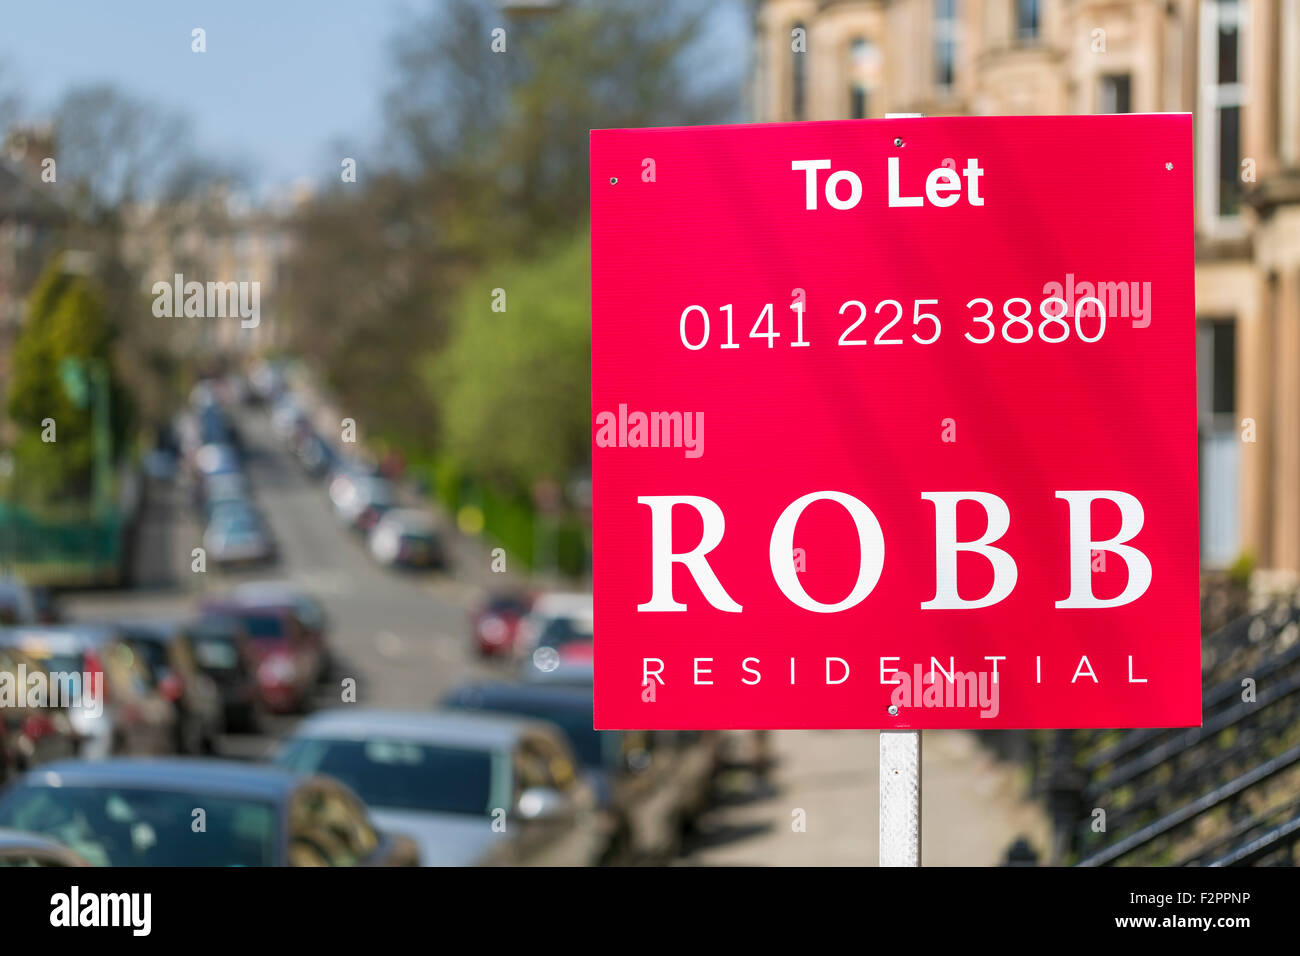 A Residential To Let sign, Glasgow, Scotland, UK - Stock Image